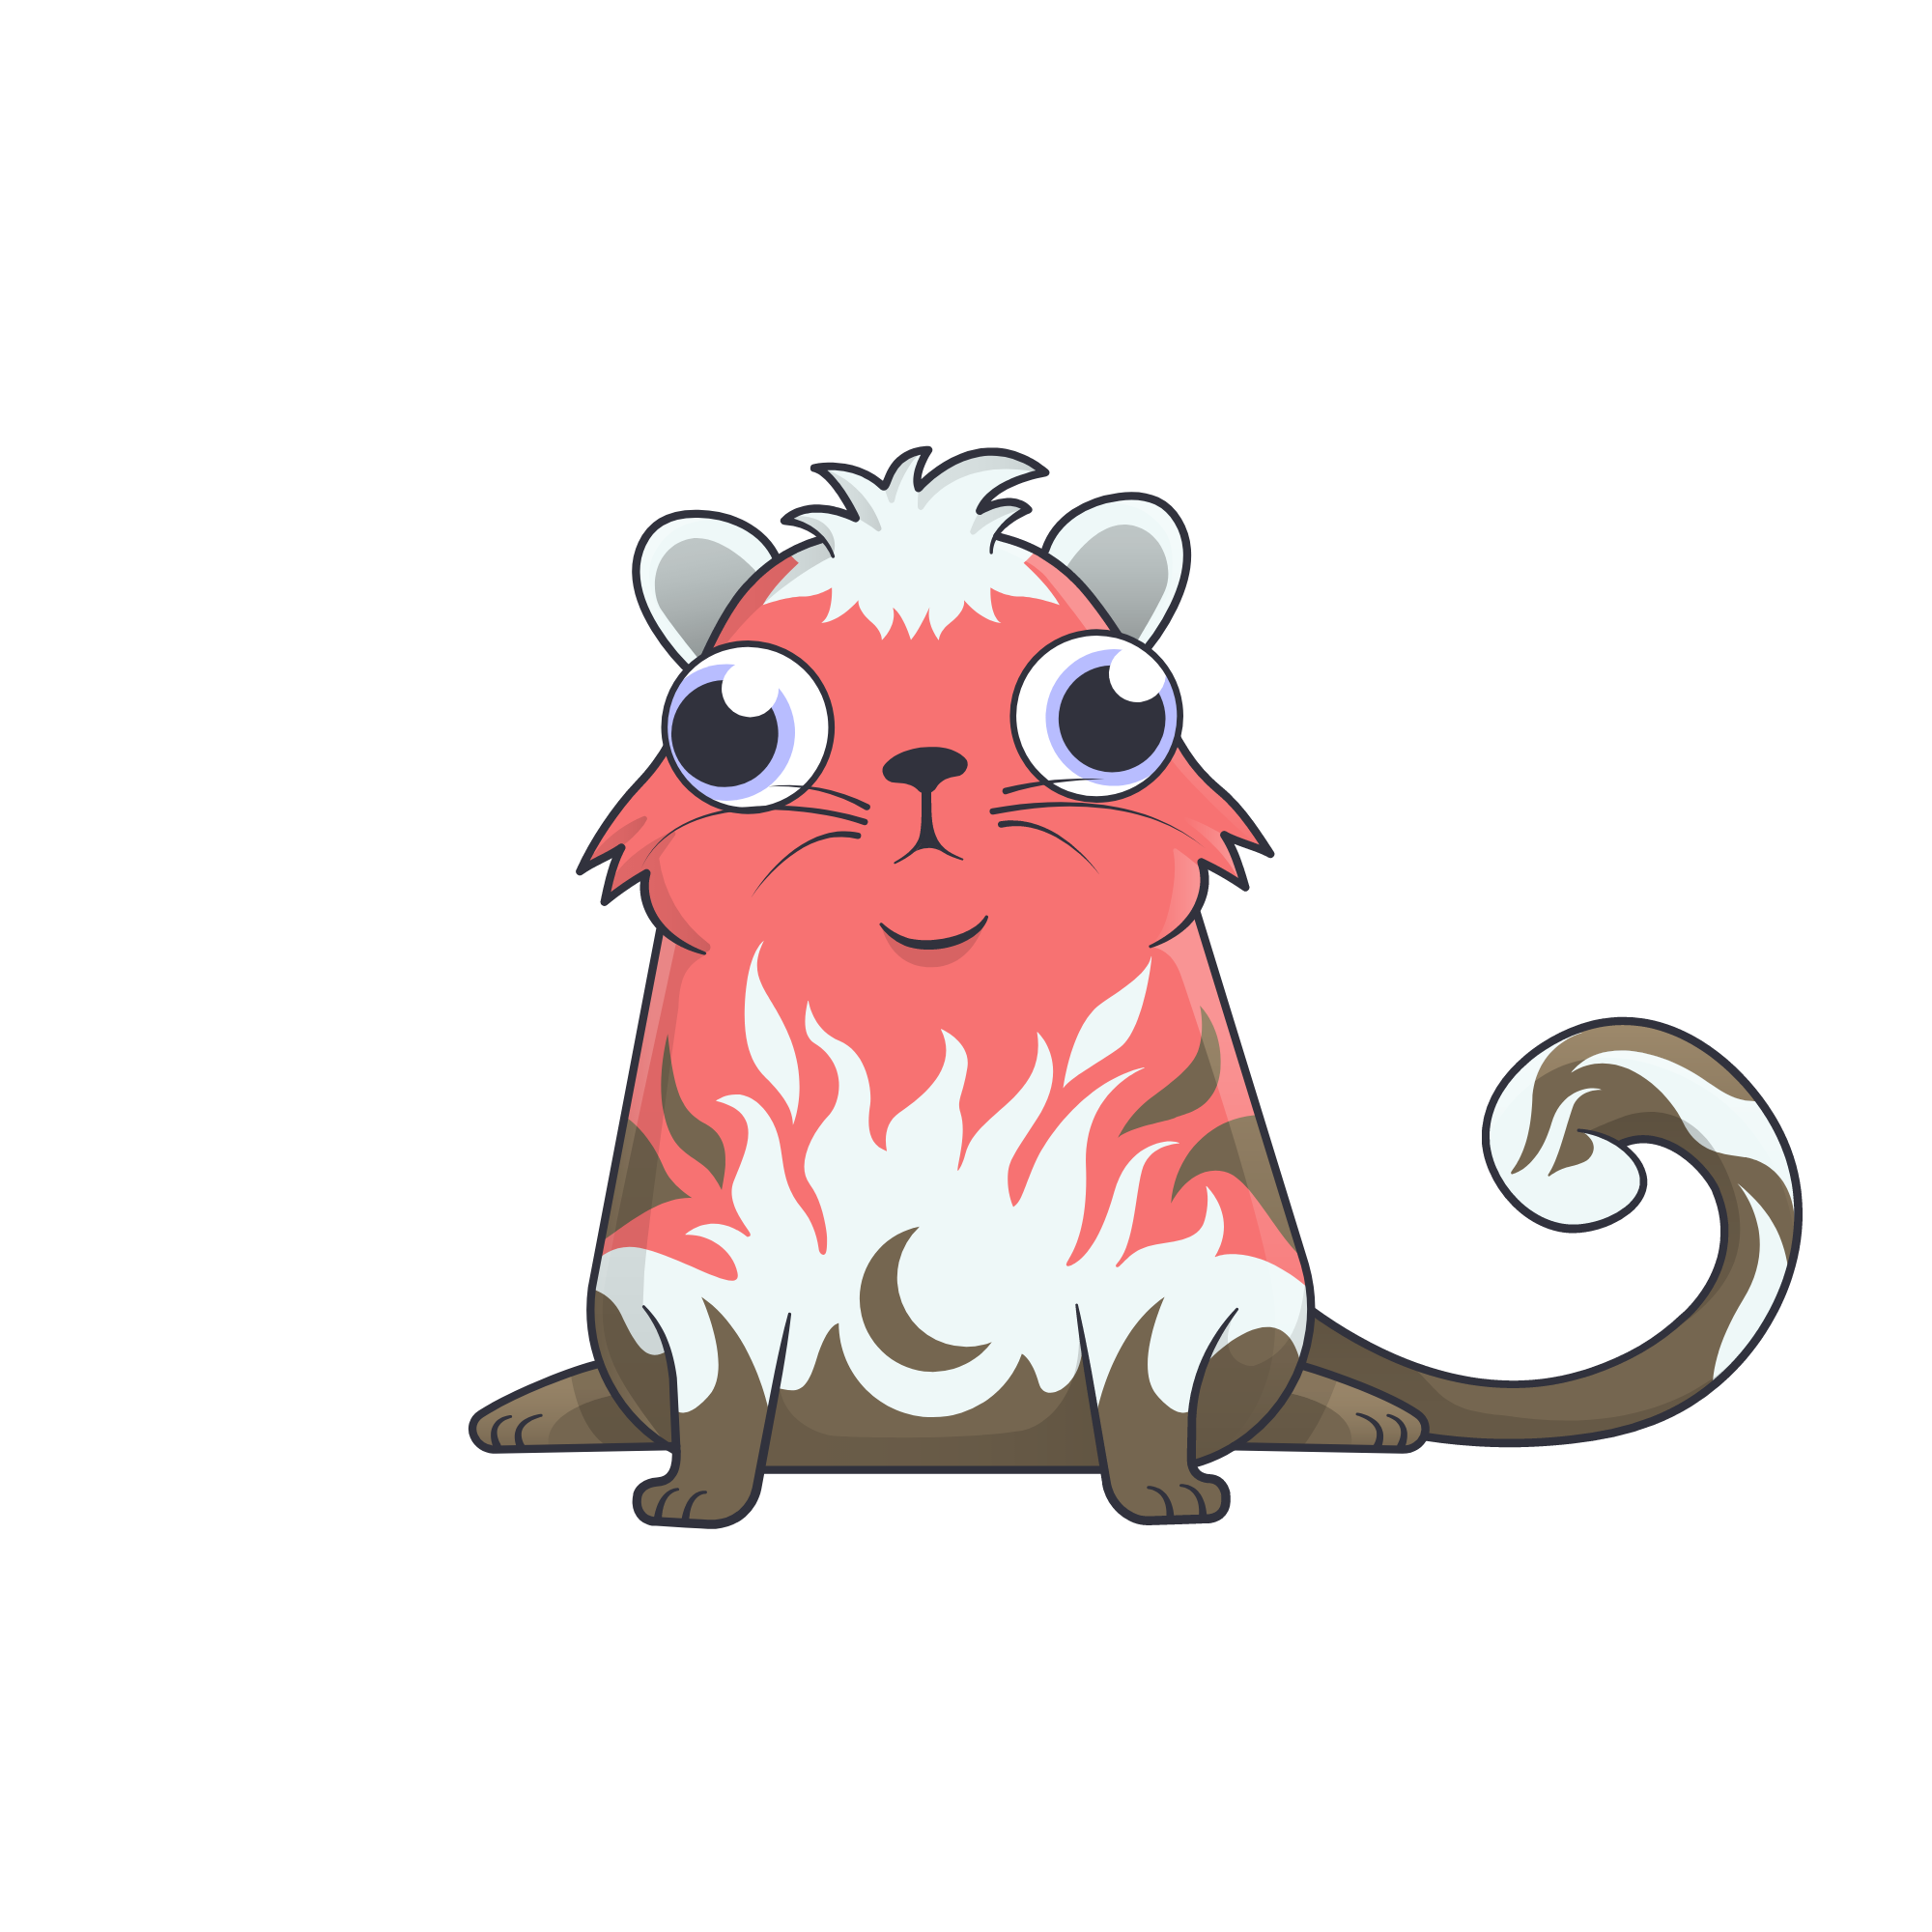 cryptokitty #1633308